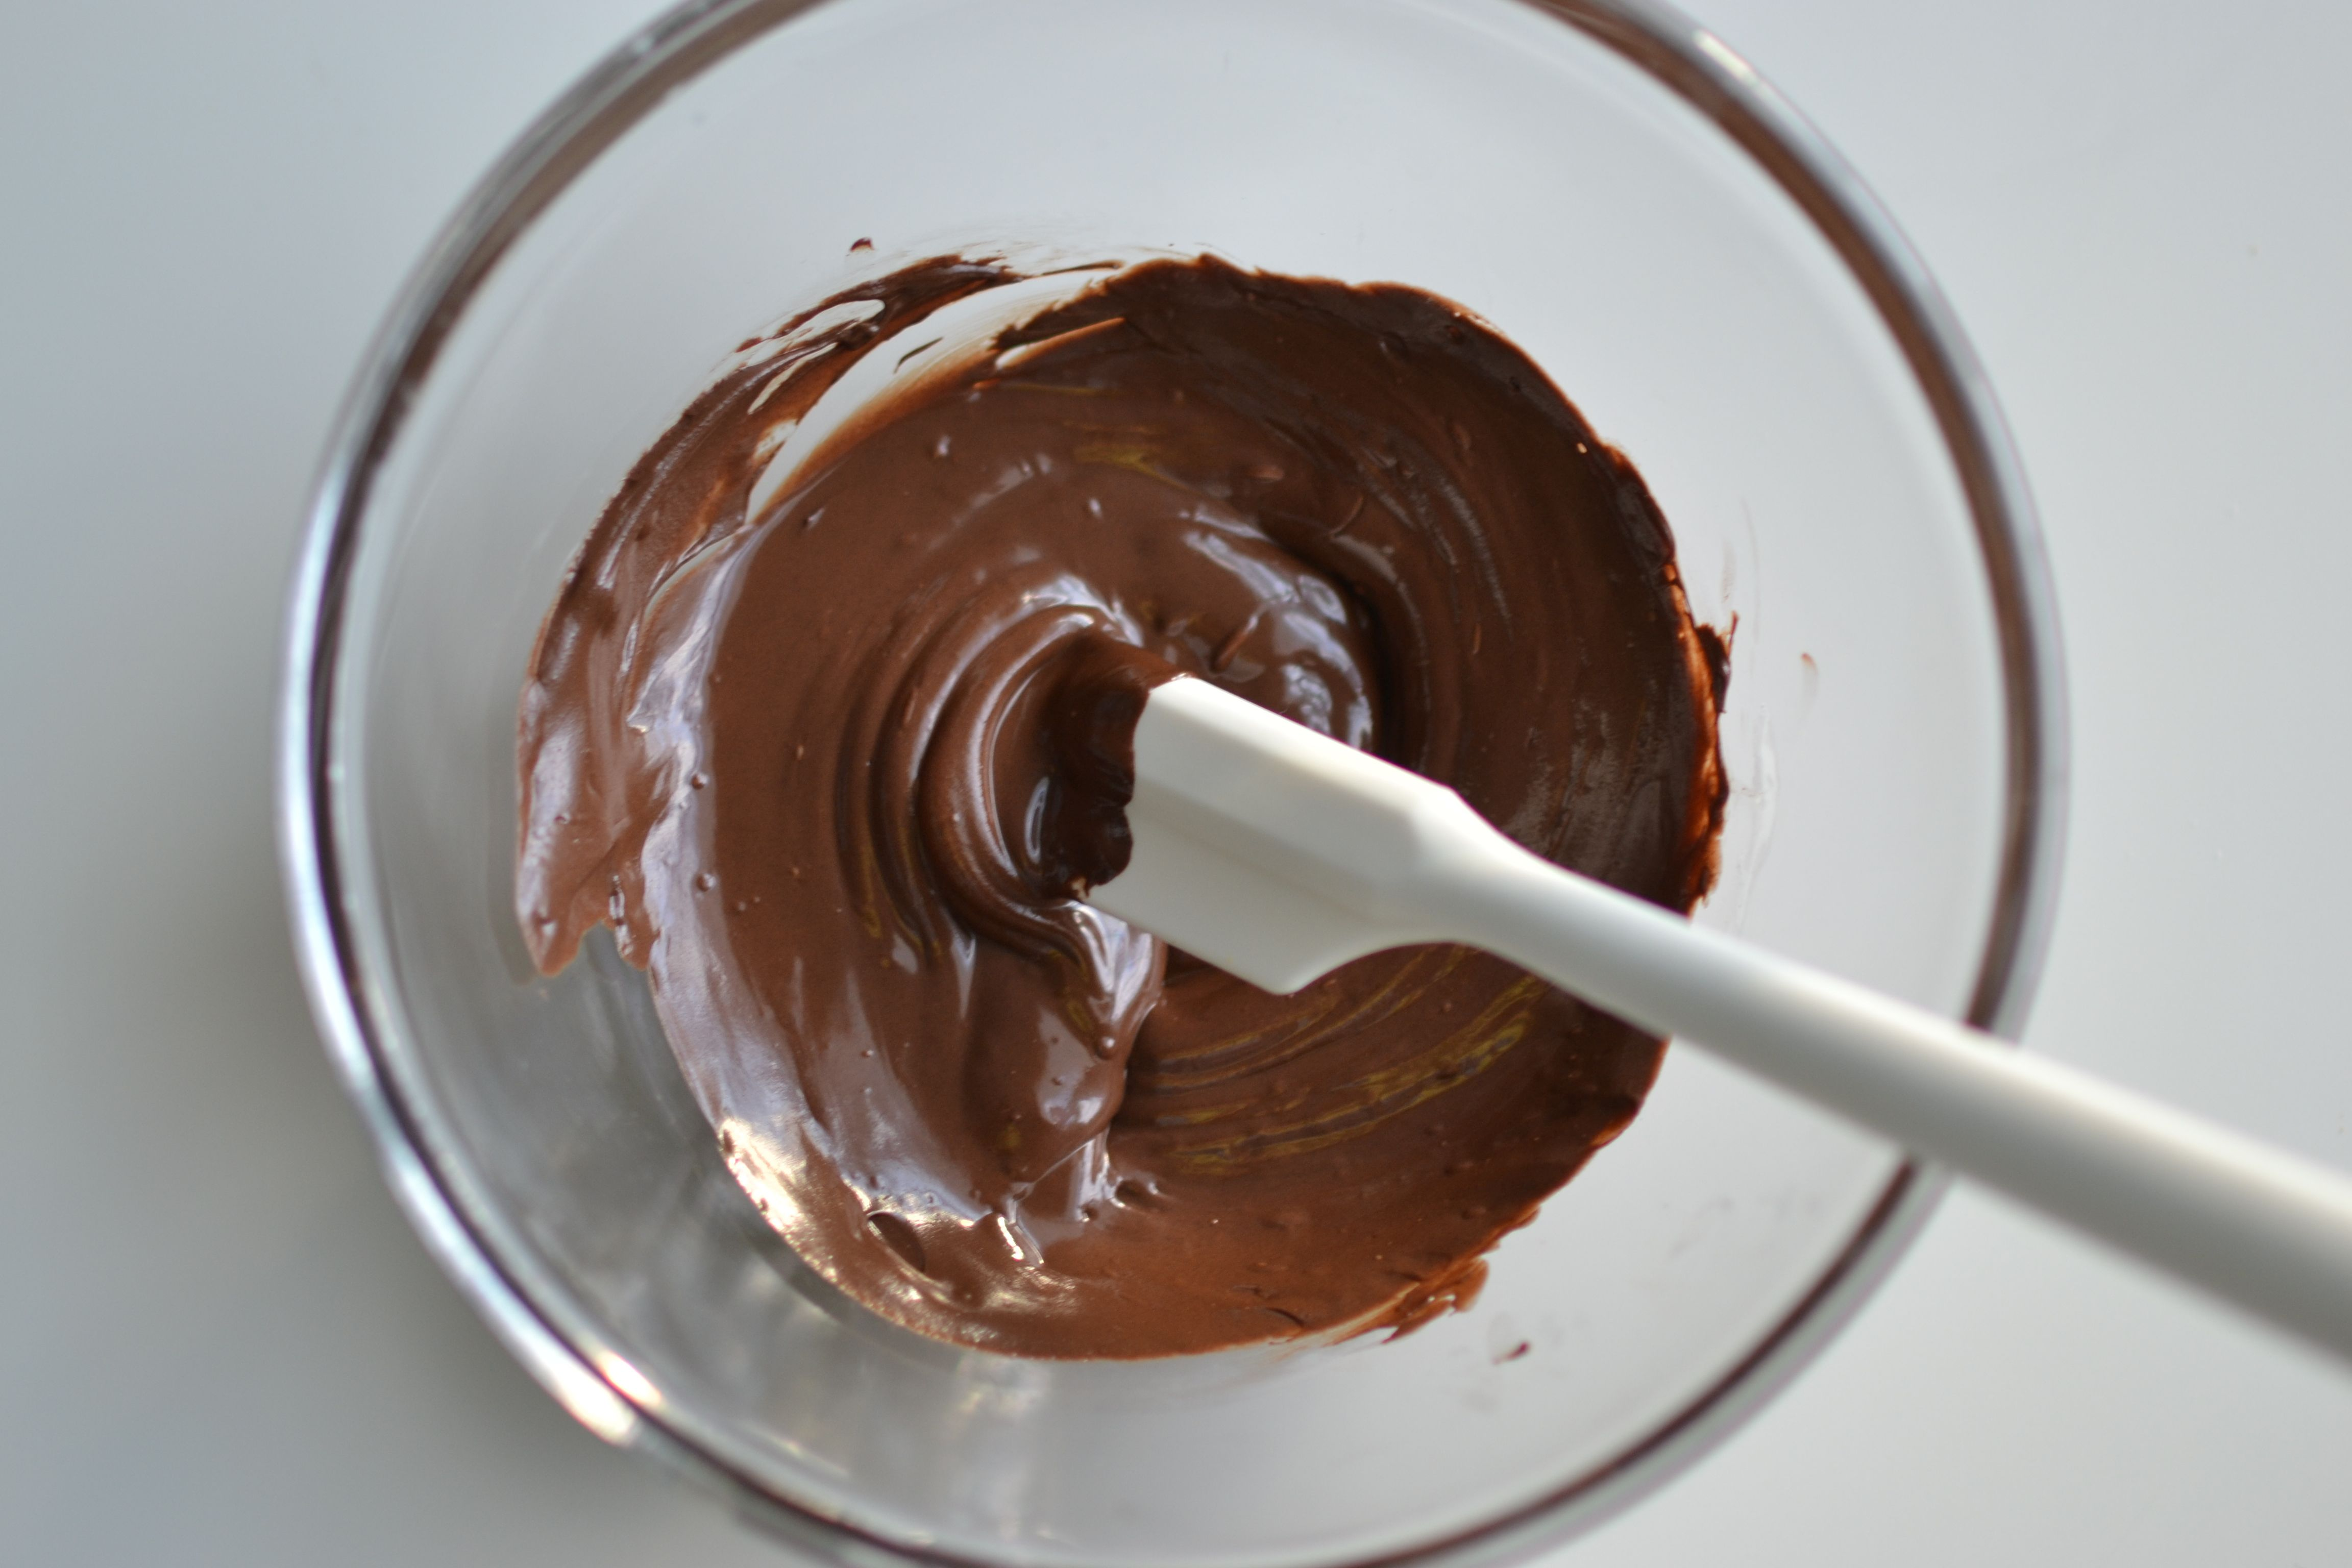 Melting Chocolate Chips Images - Reverse Search